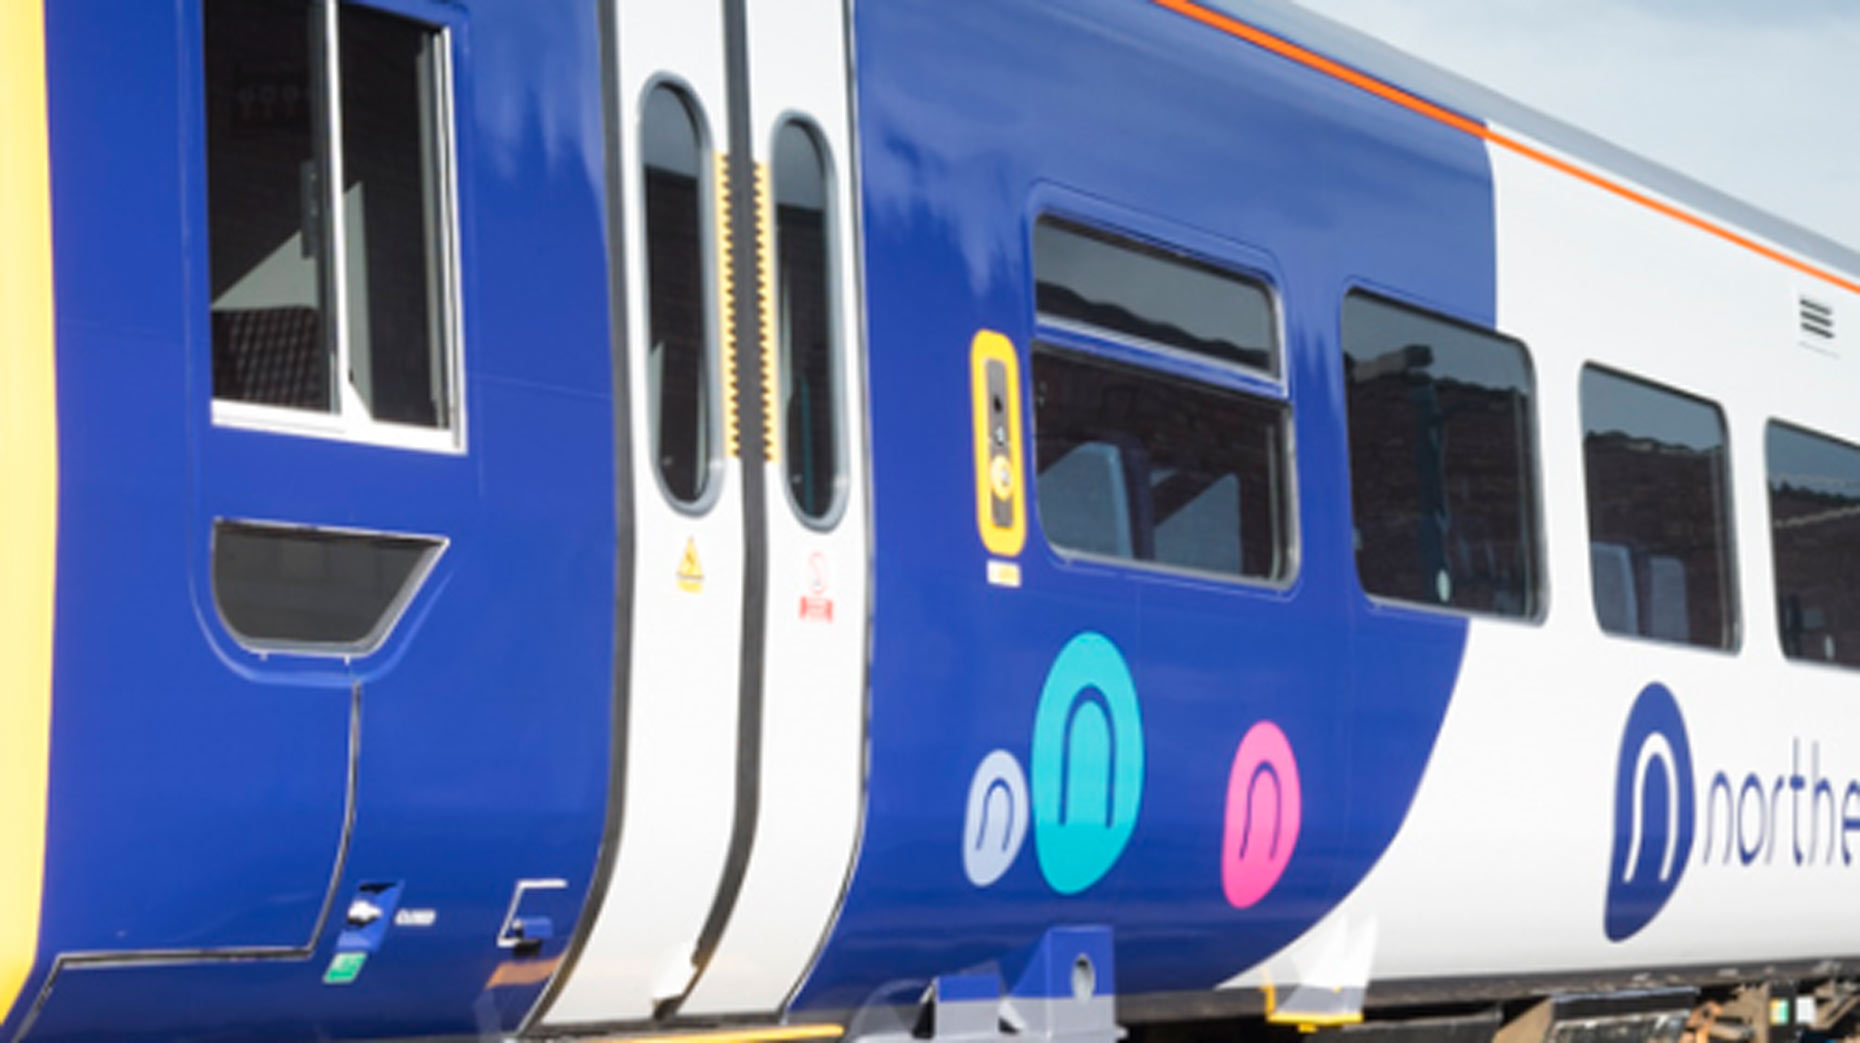 When is the Northern Rail strike and which trains will be disrupted?